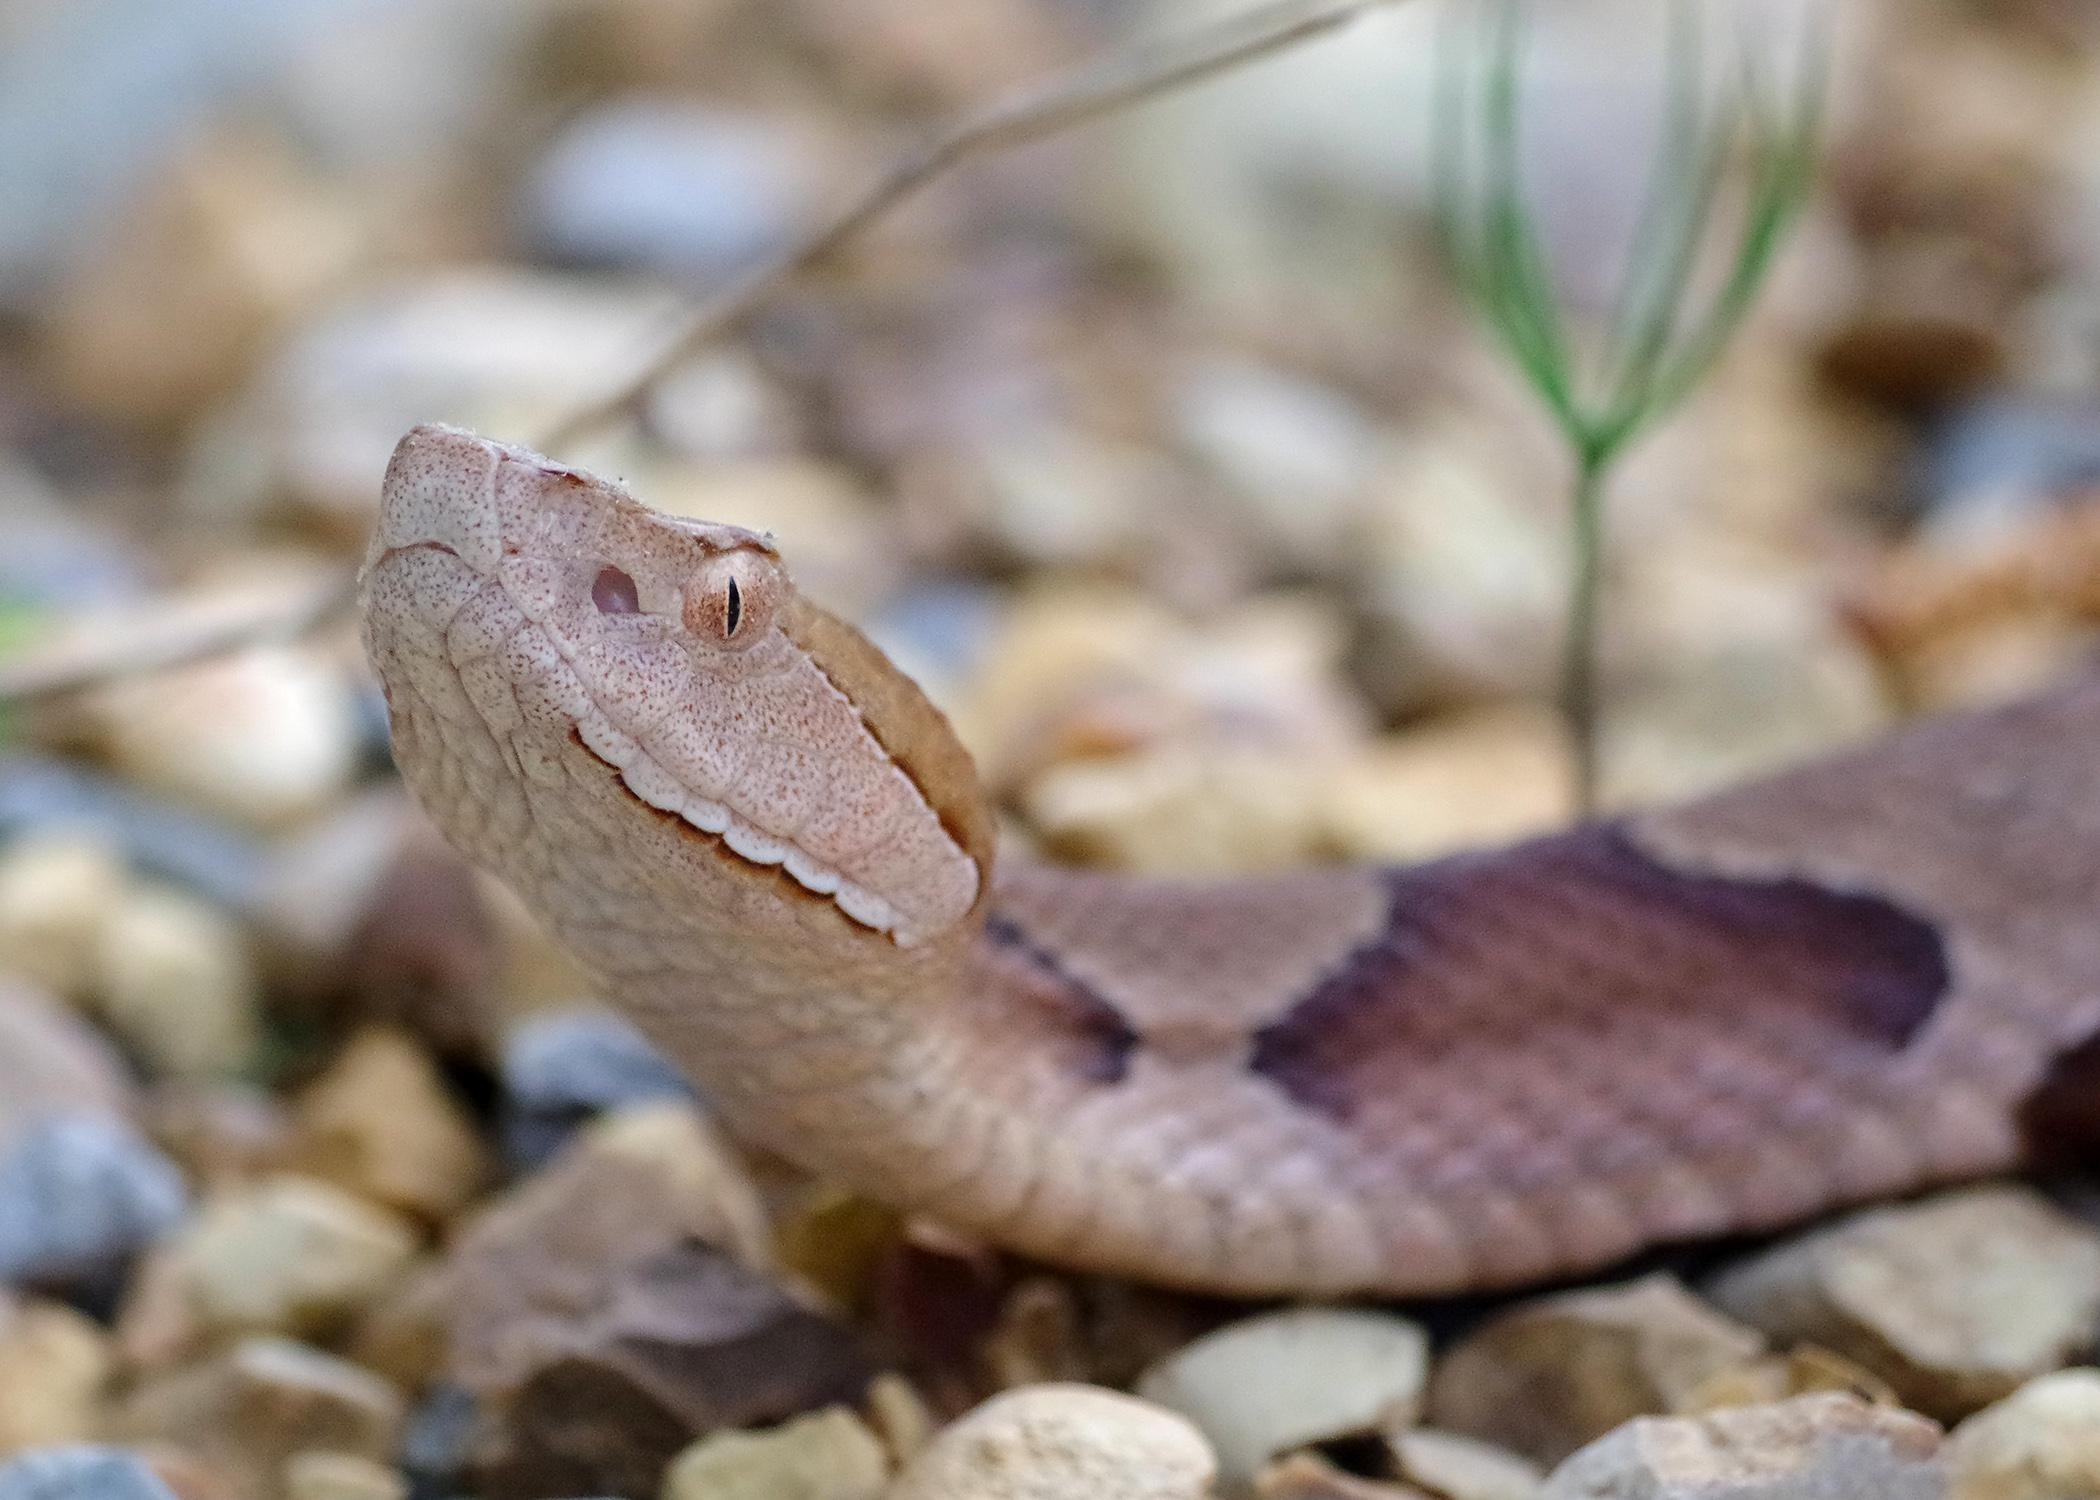 In Mississippi, most venomous snakes, such as this copperhead, have a triangular-shaped head with vertical, cat-like pupils in their eyes. The only exception is the coral snake. (Photo courtesy of Taylor Hannah)